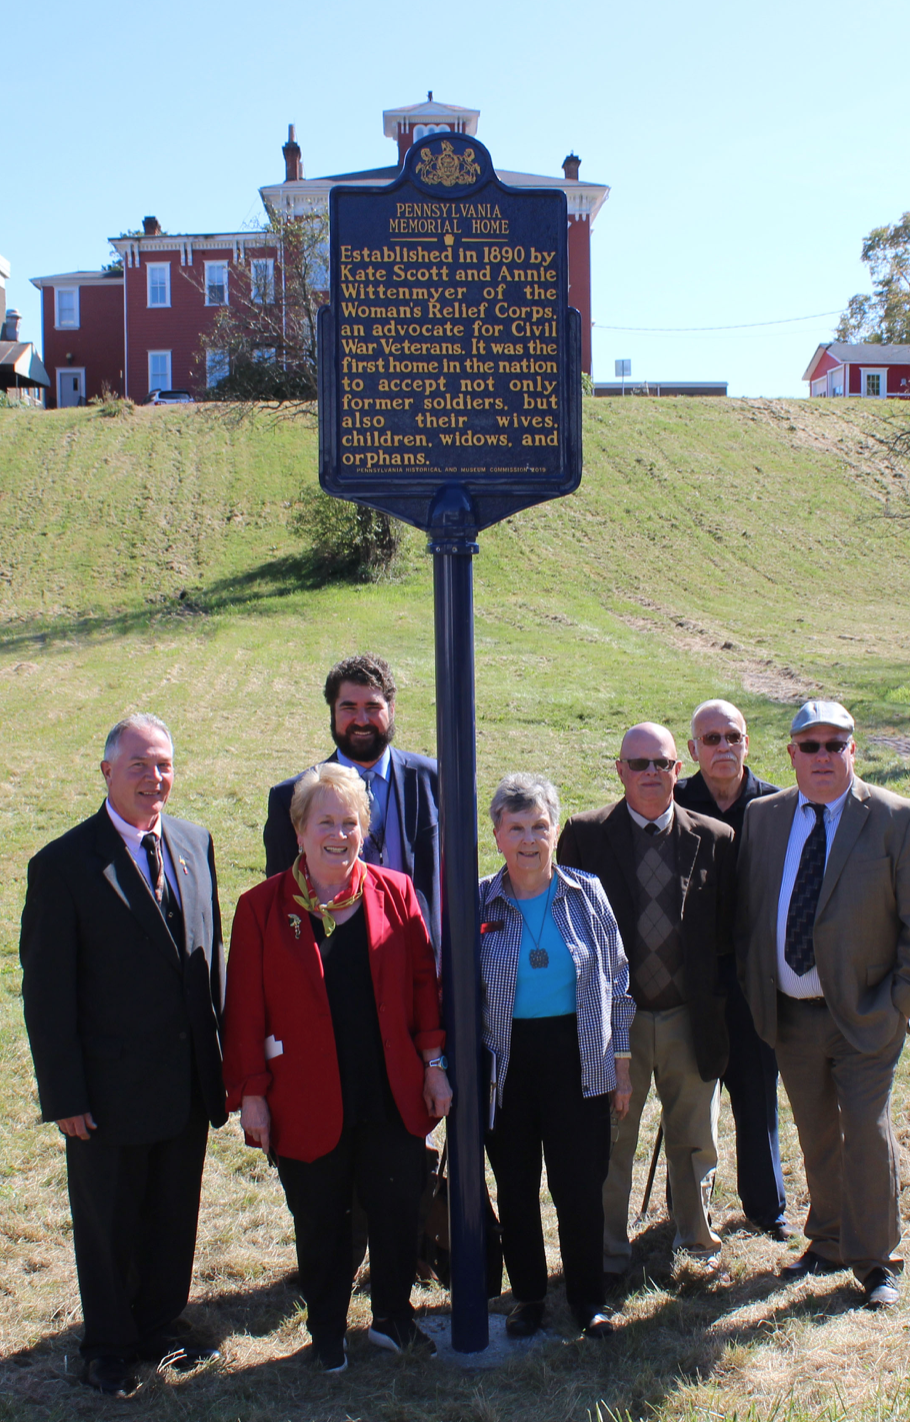 The Pennsylvania Memorial Home was honored with a new historical marker on Friday, October, 11, 2019